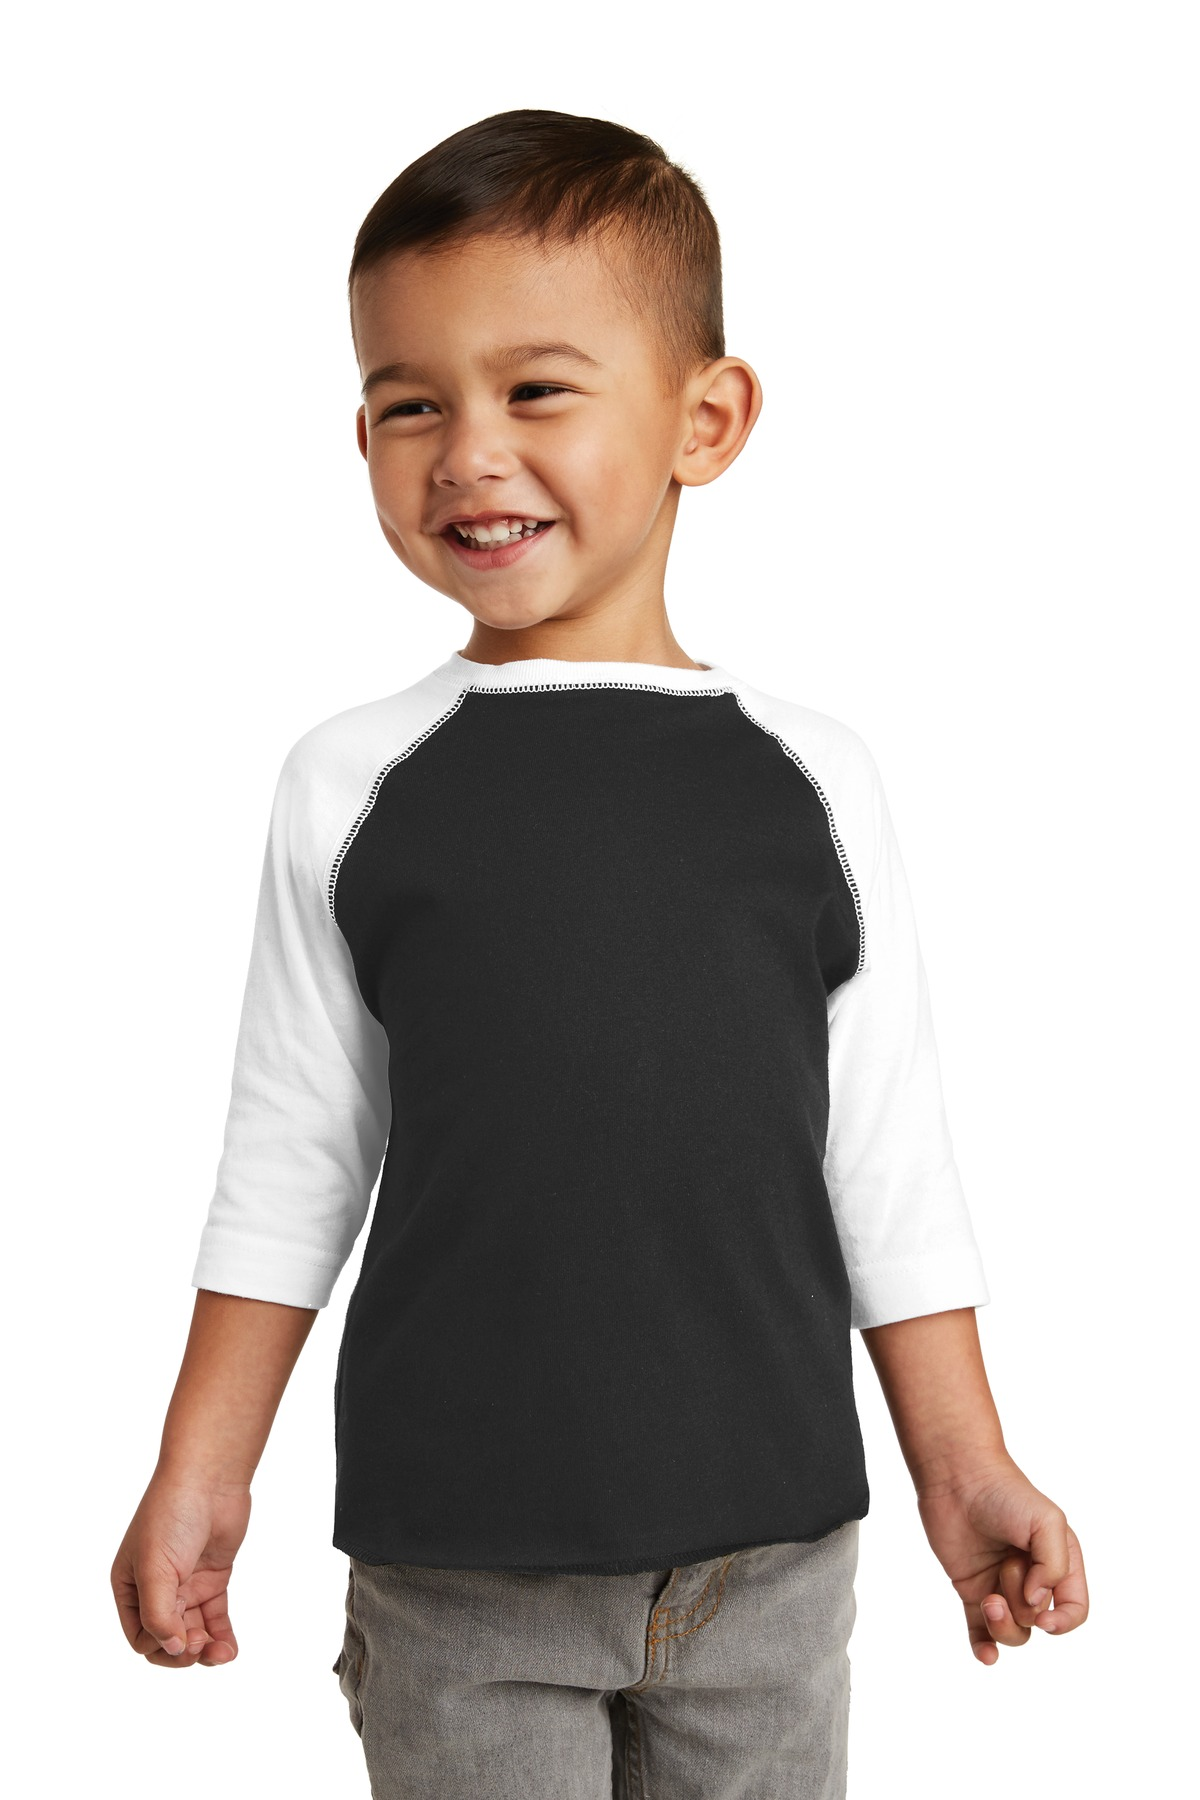 Rabbit Skins ™  Toddler Baseball Fine Jersey Tee. RS3330 - Black/ White